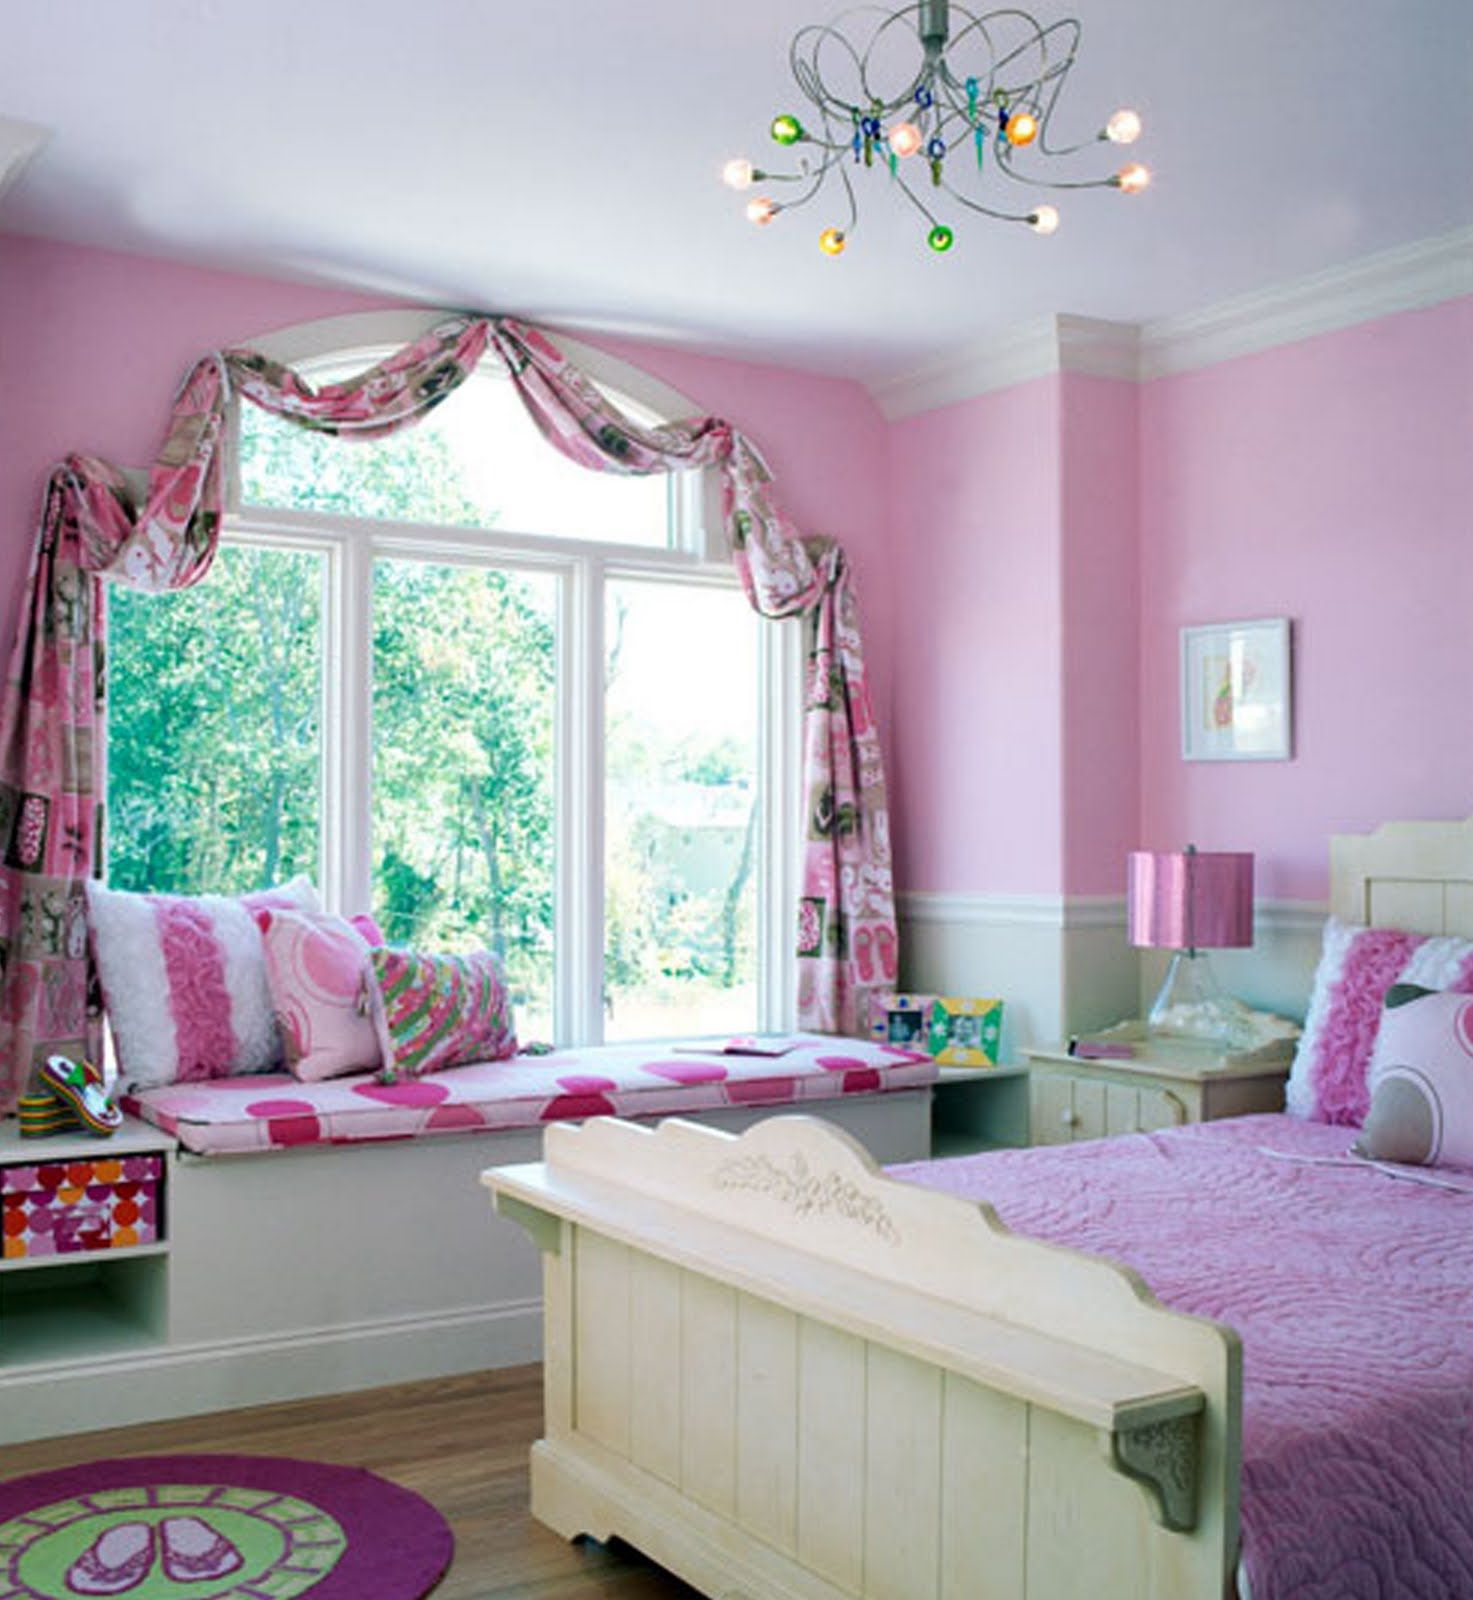 Charming Pink And White Themes Design Room For Teenage